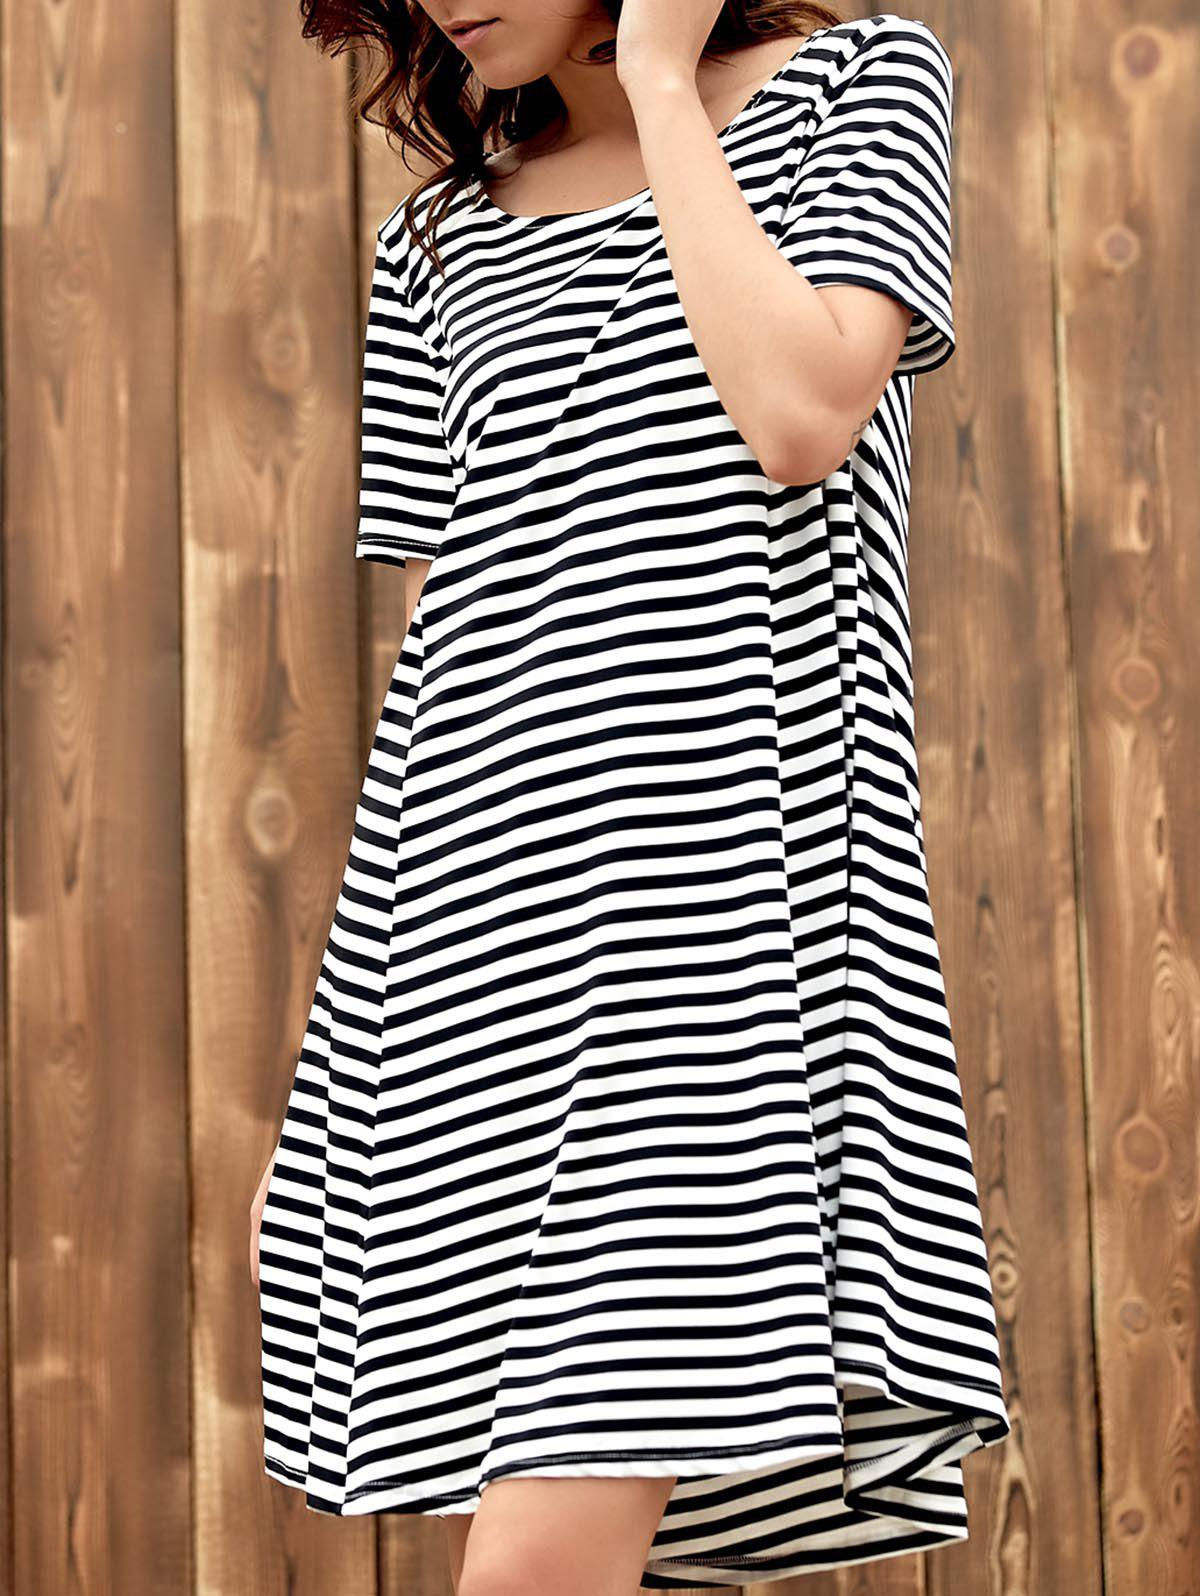 Sweet Style Scoop Neck Short Sleeve Black and White Stripe Women's Dress - WHITE/BLACK S